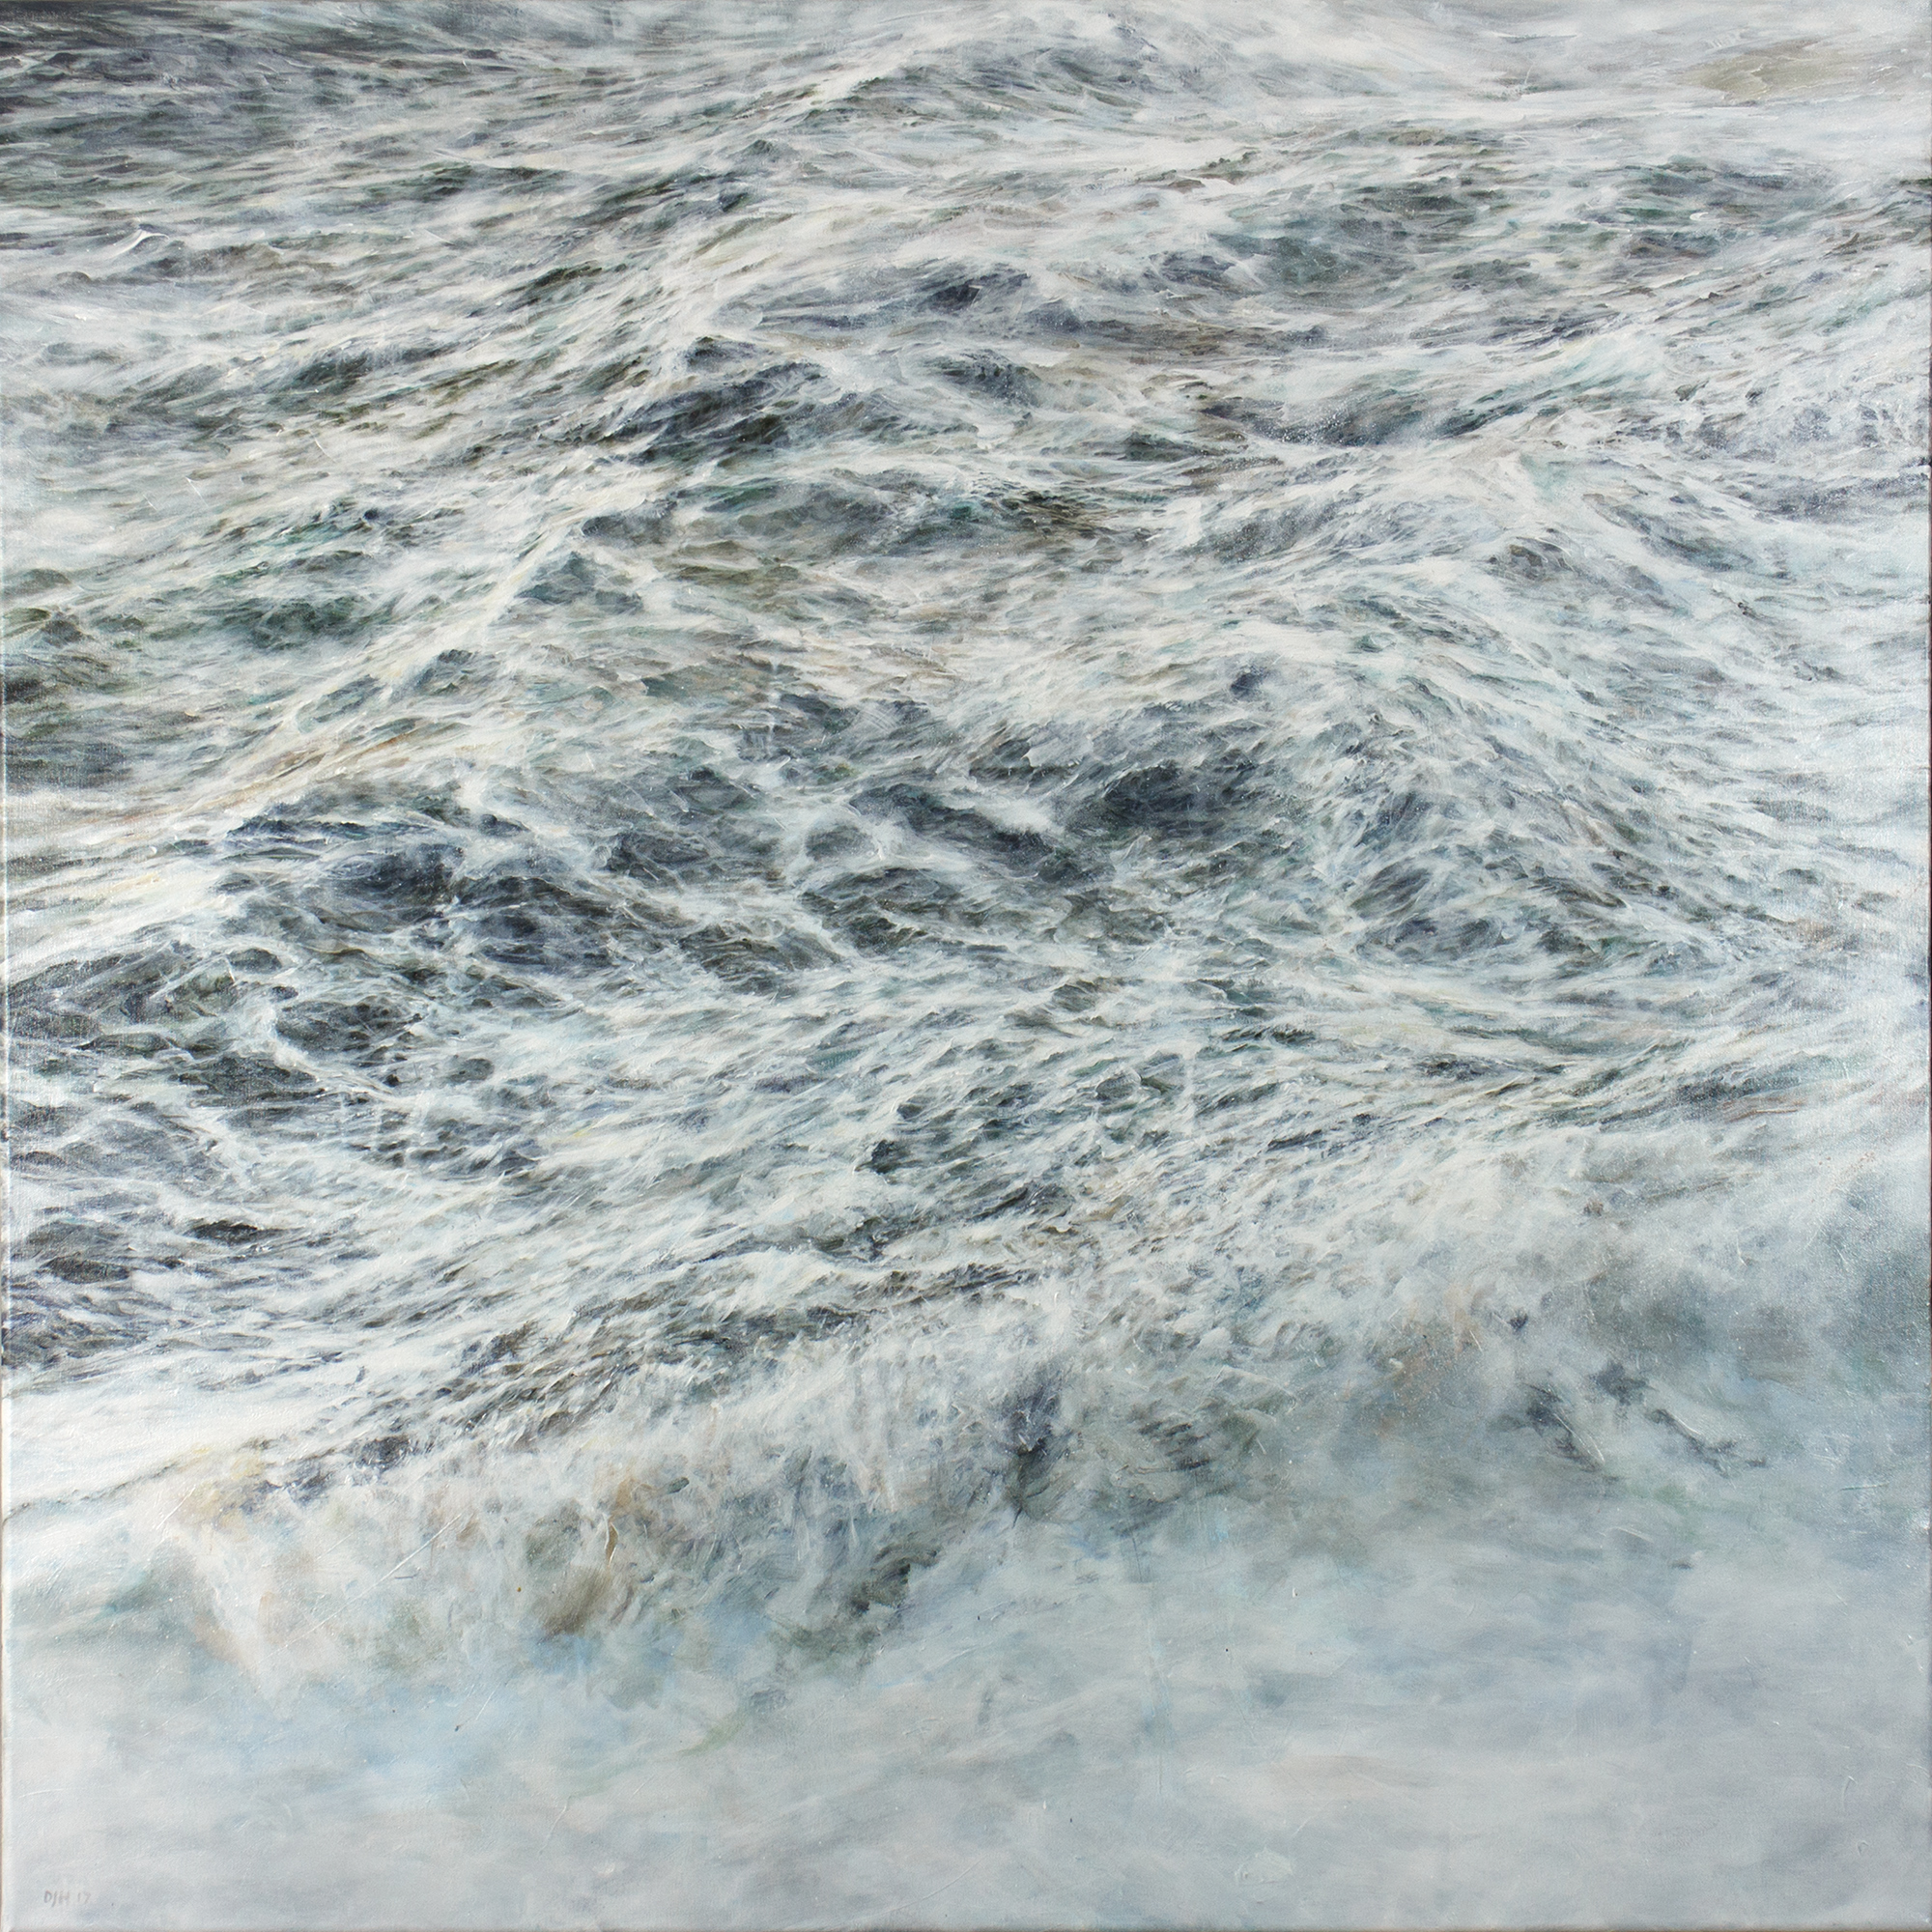 Duncan Hopkins, THE UNFINISHING, Acrylic on canvas, 100 x 100 x 2 cm,  http://www.duncanhopkins.net